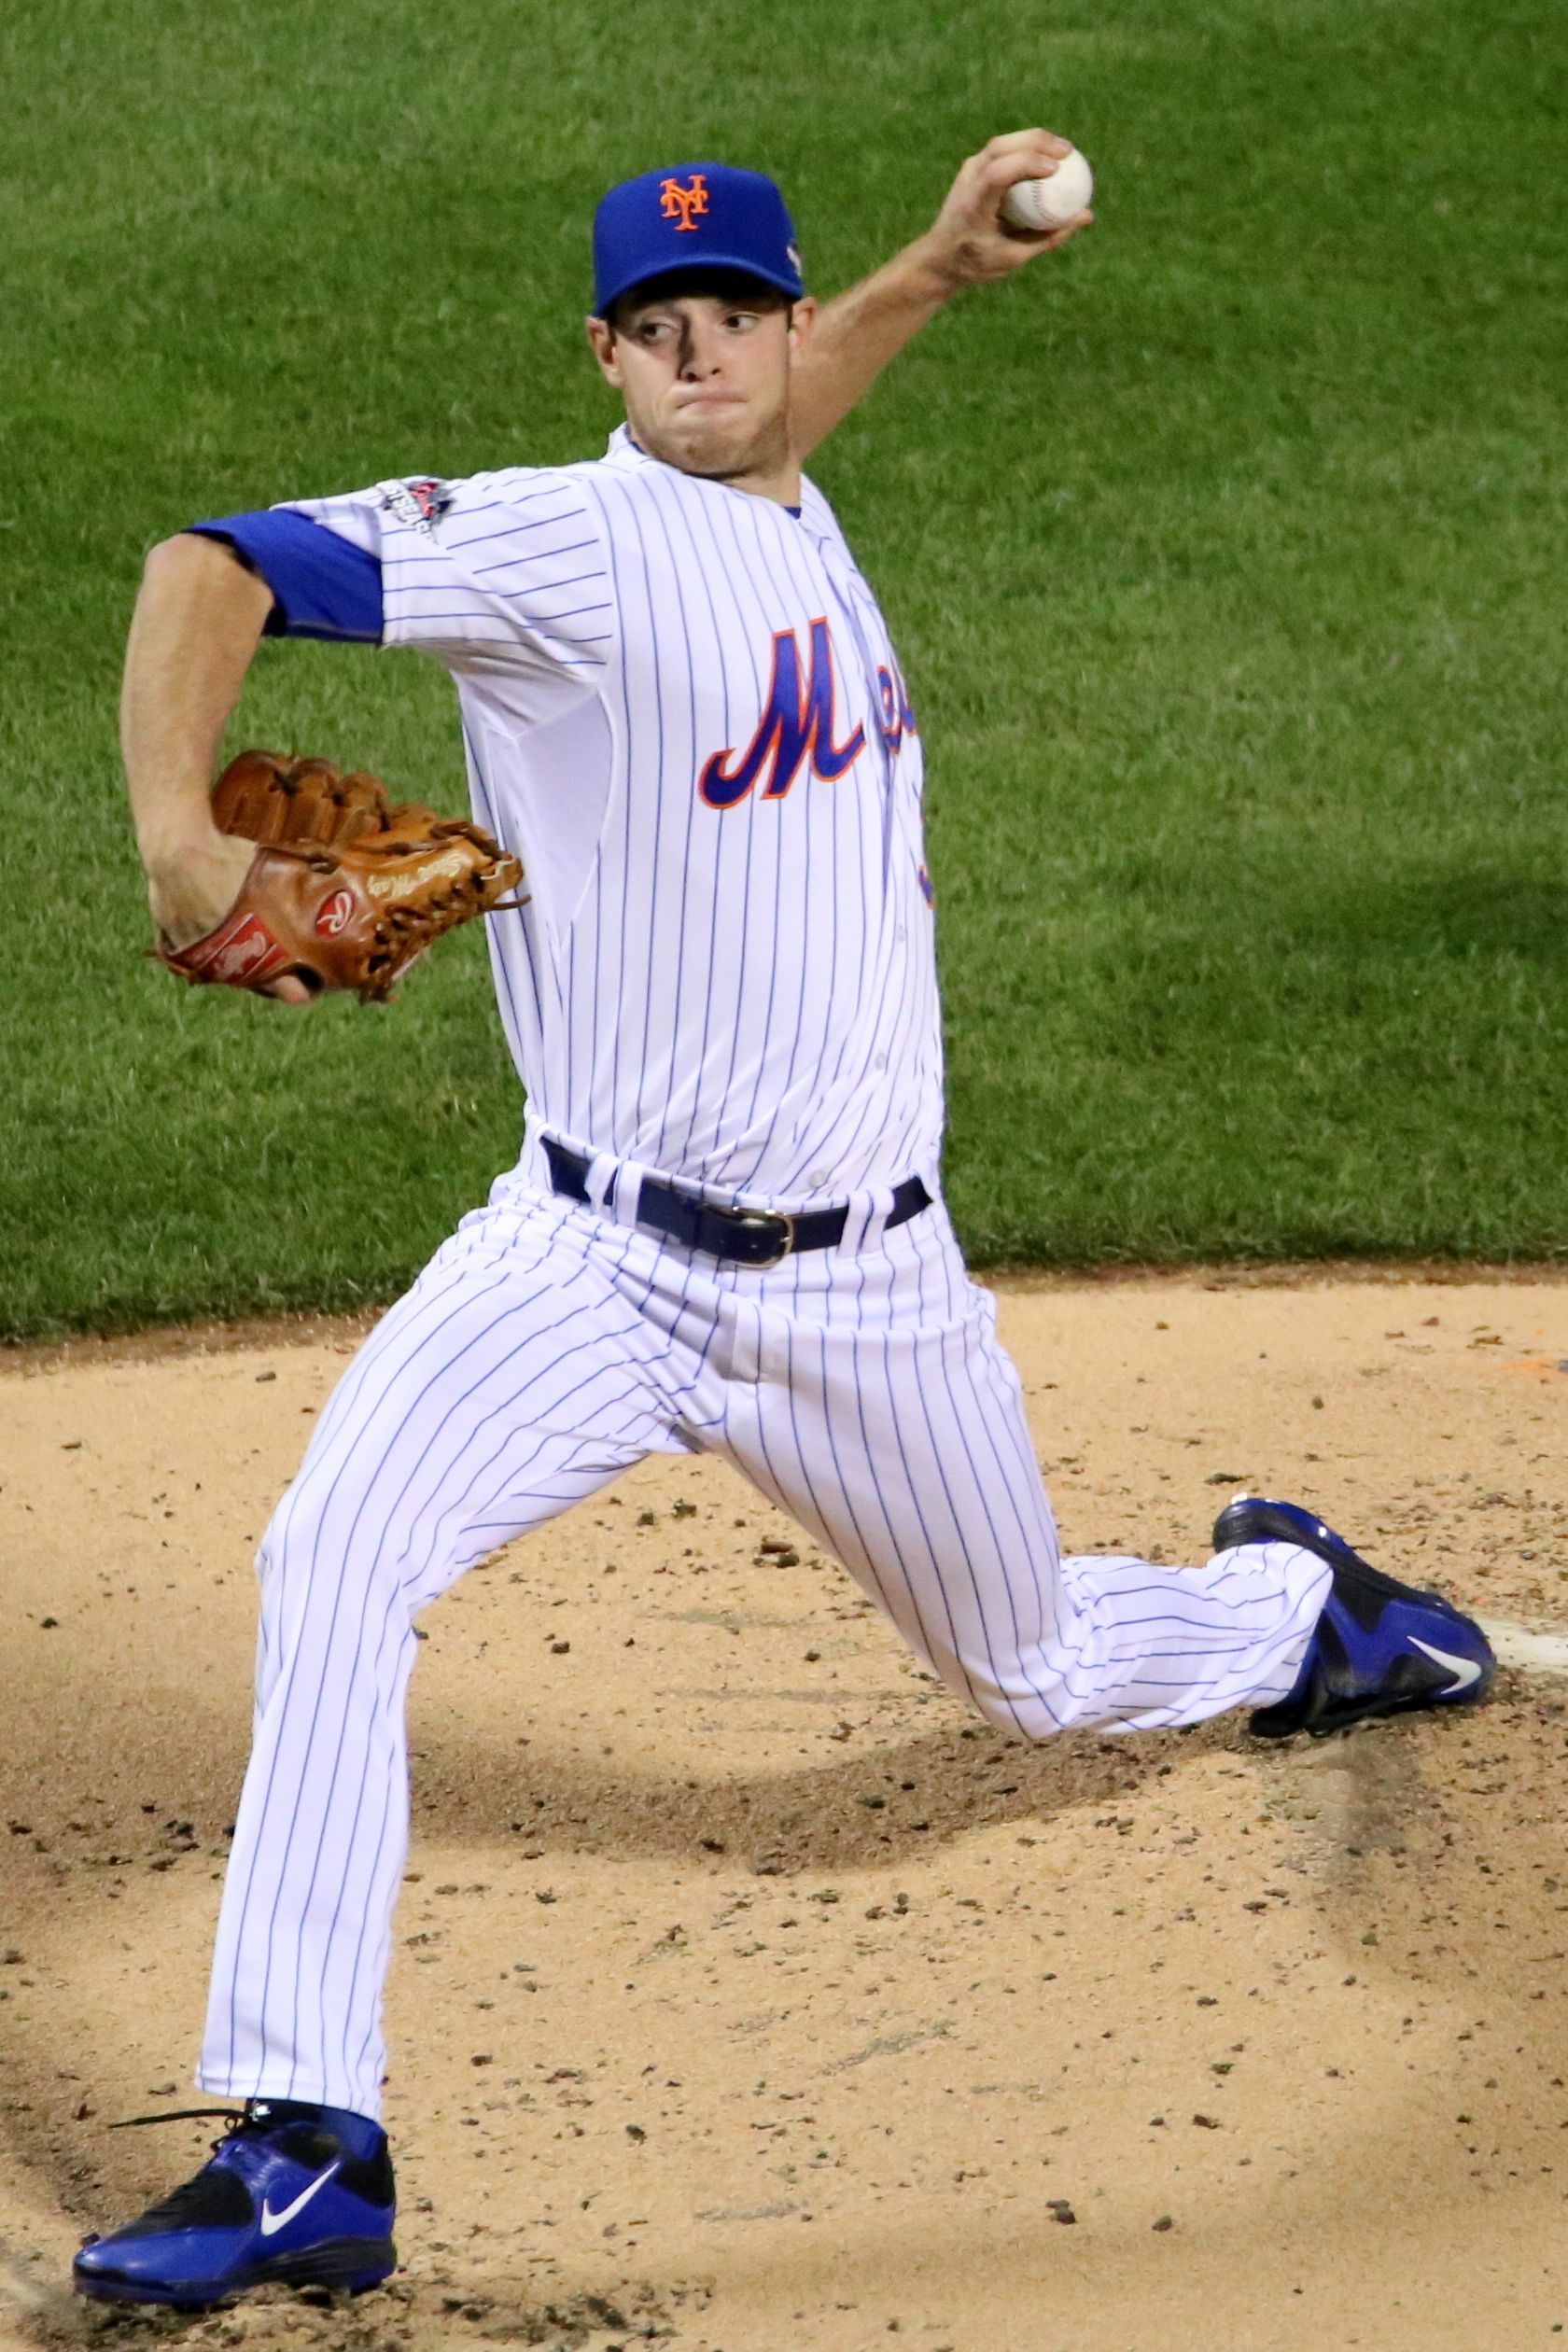 Steven_matz_on_october_13,_2015